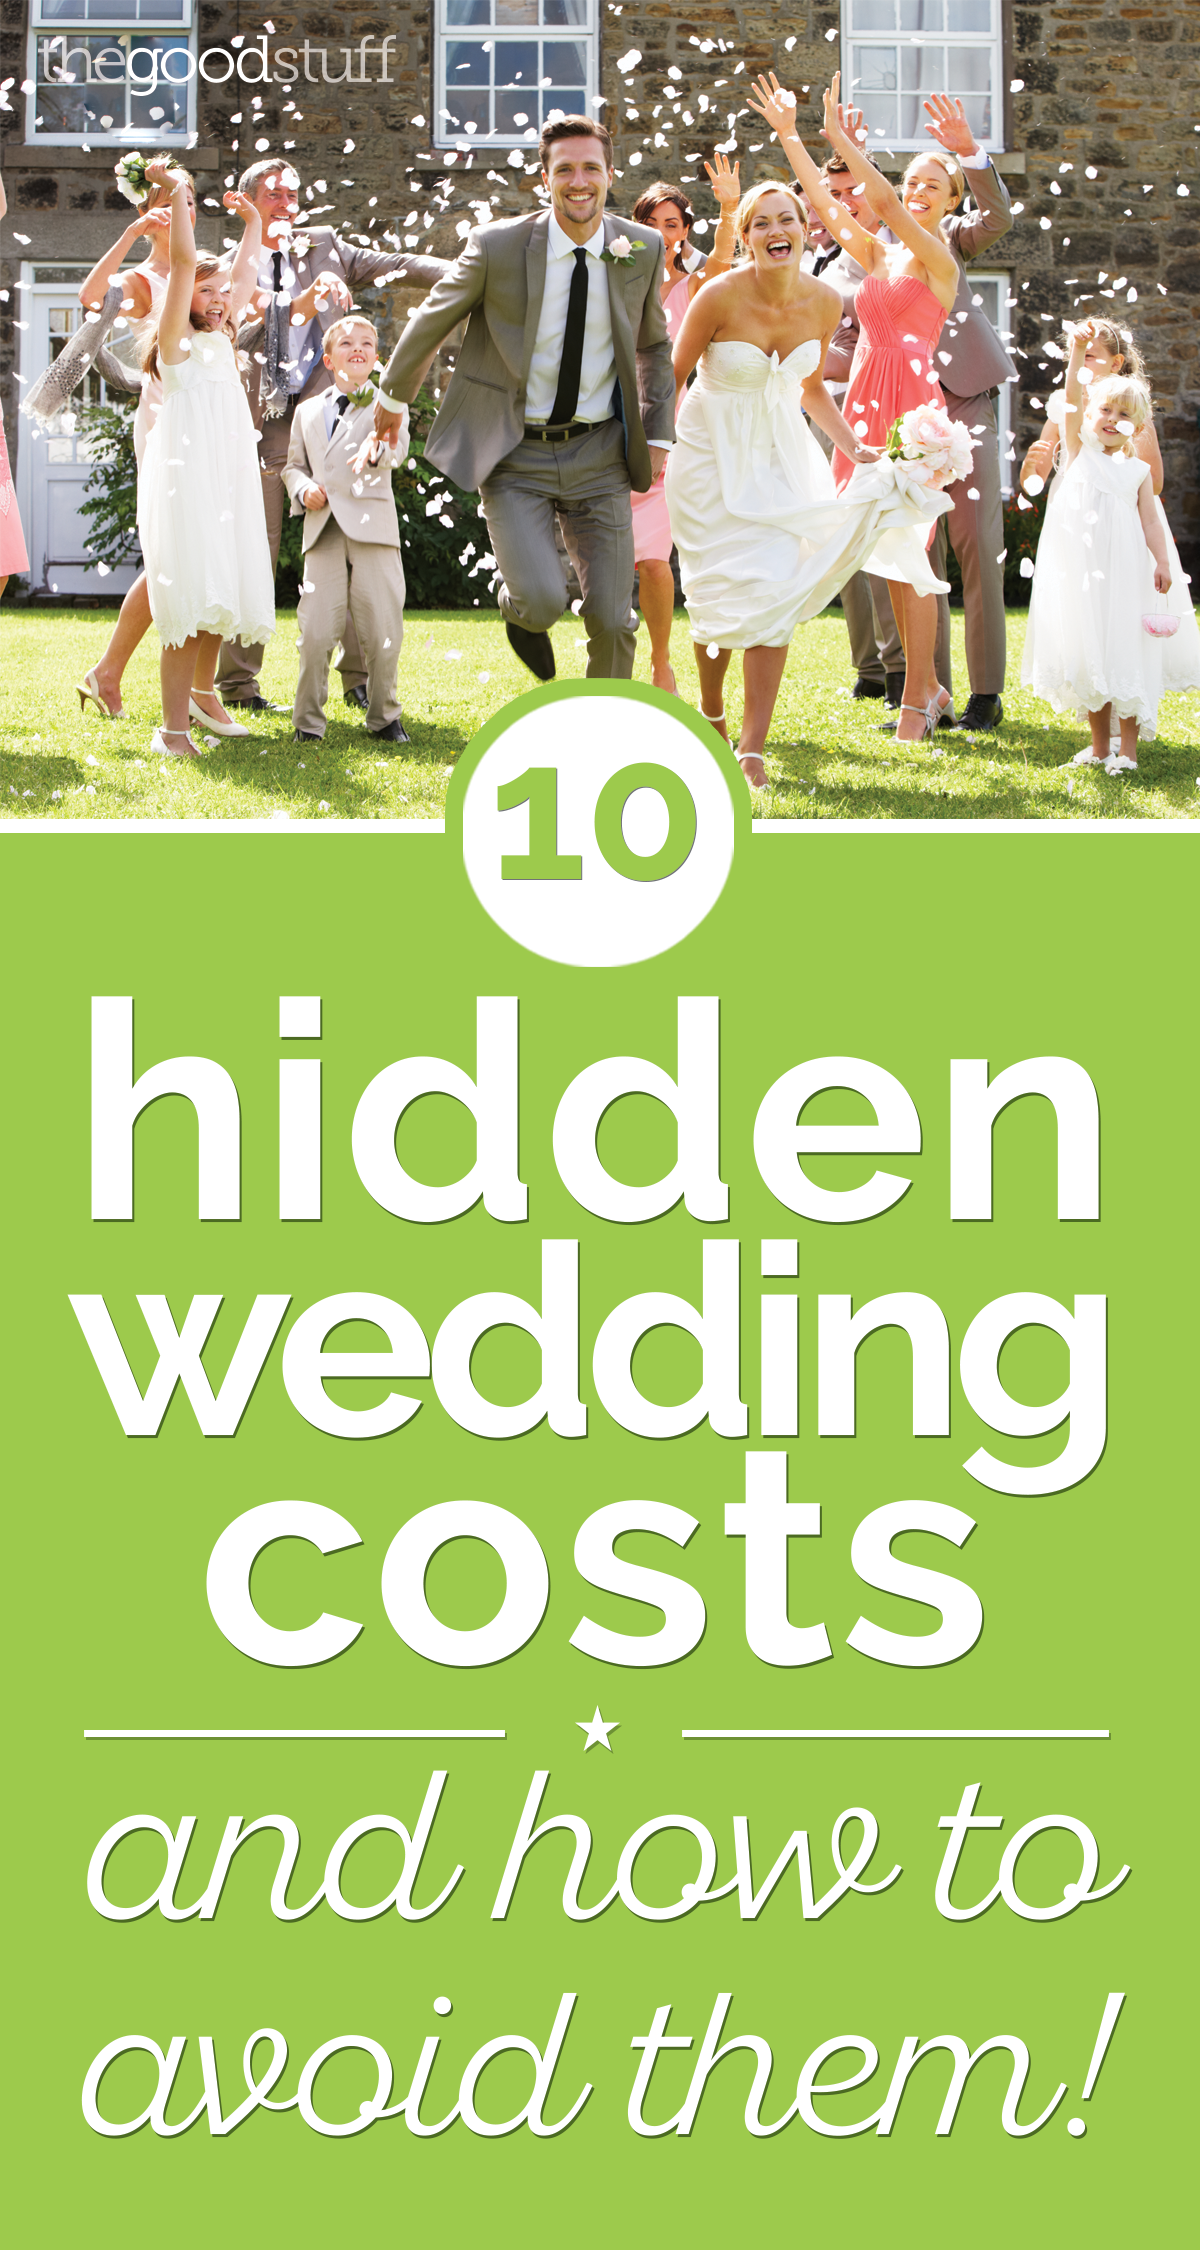 10 Hidden Wedding Costs — And How to Avoid Them! | thegoodstuff